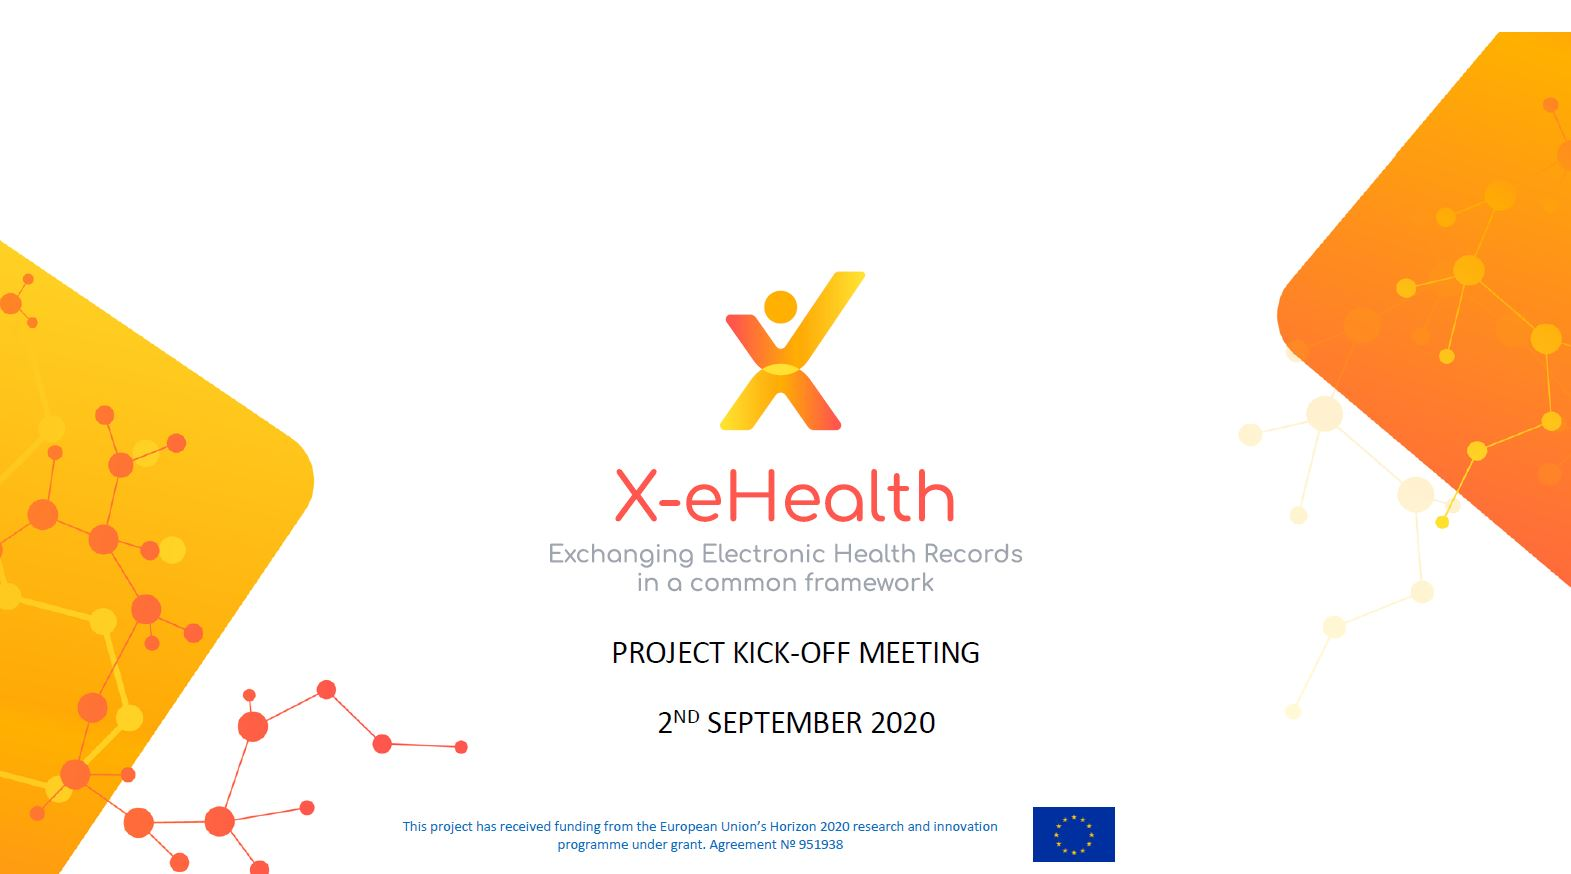 Launch of the European X-eHealth project with the participation of the TIC Salut Social Foundation